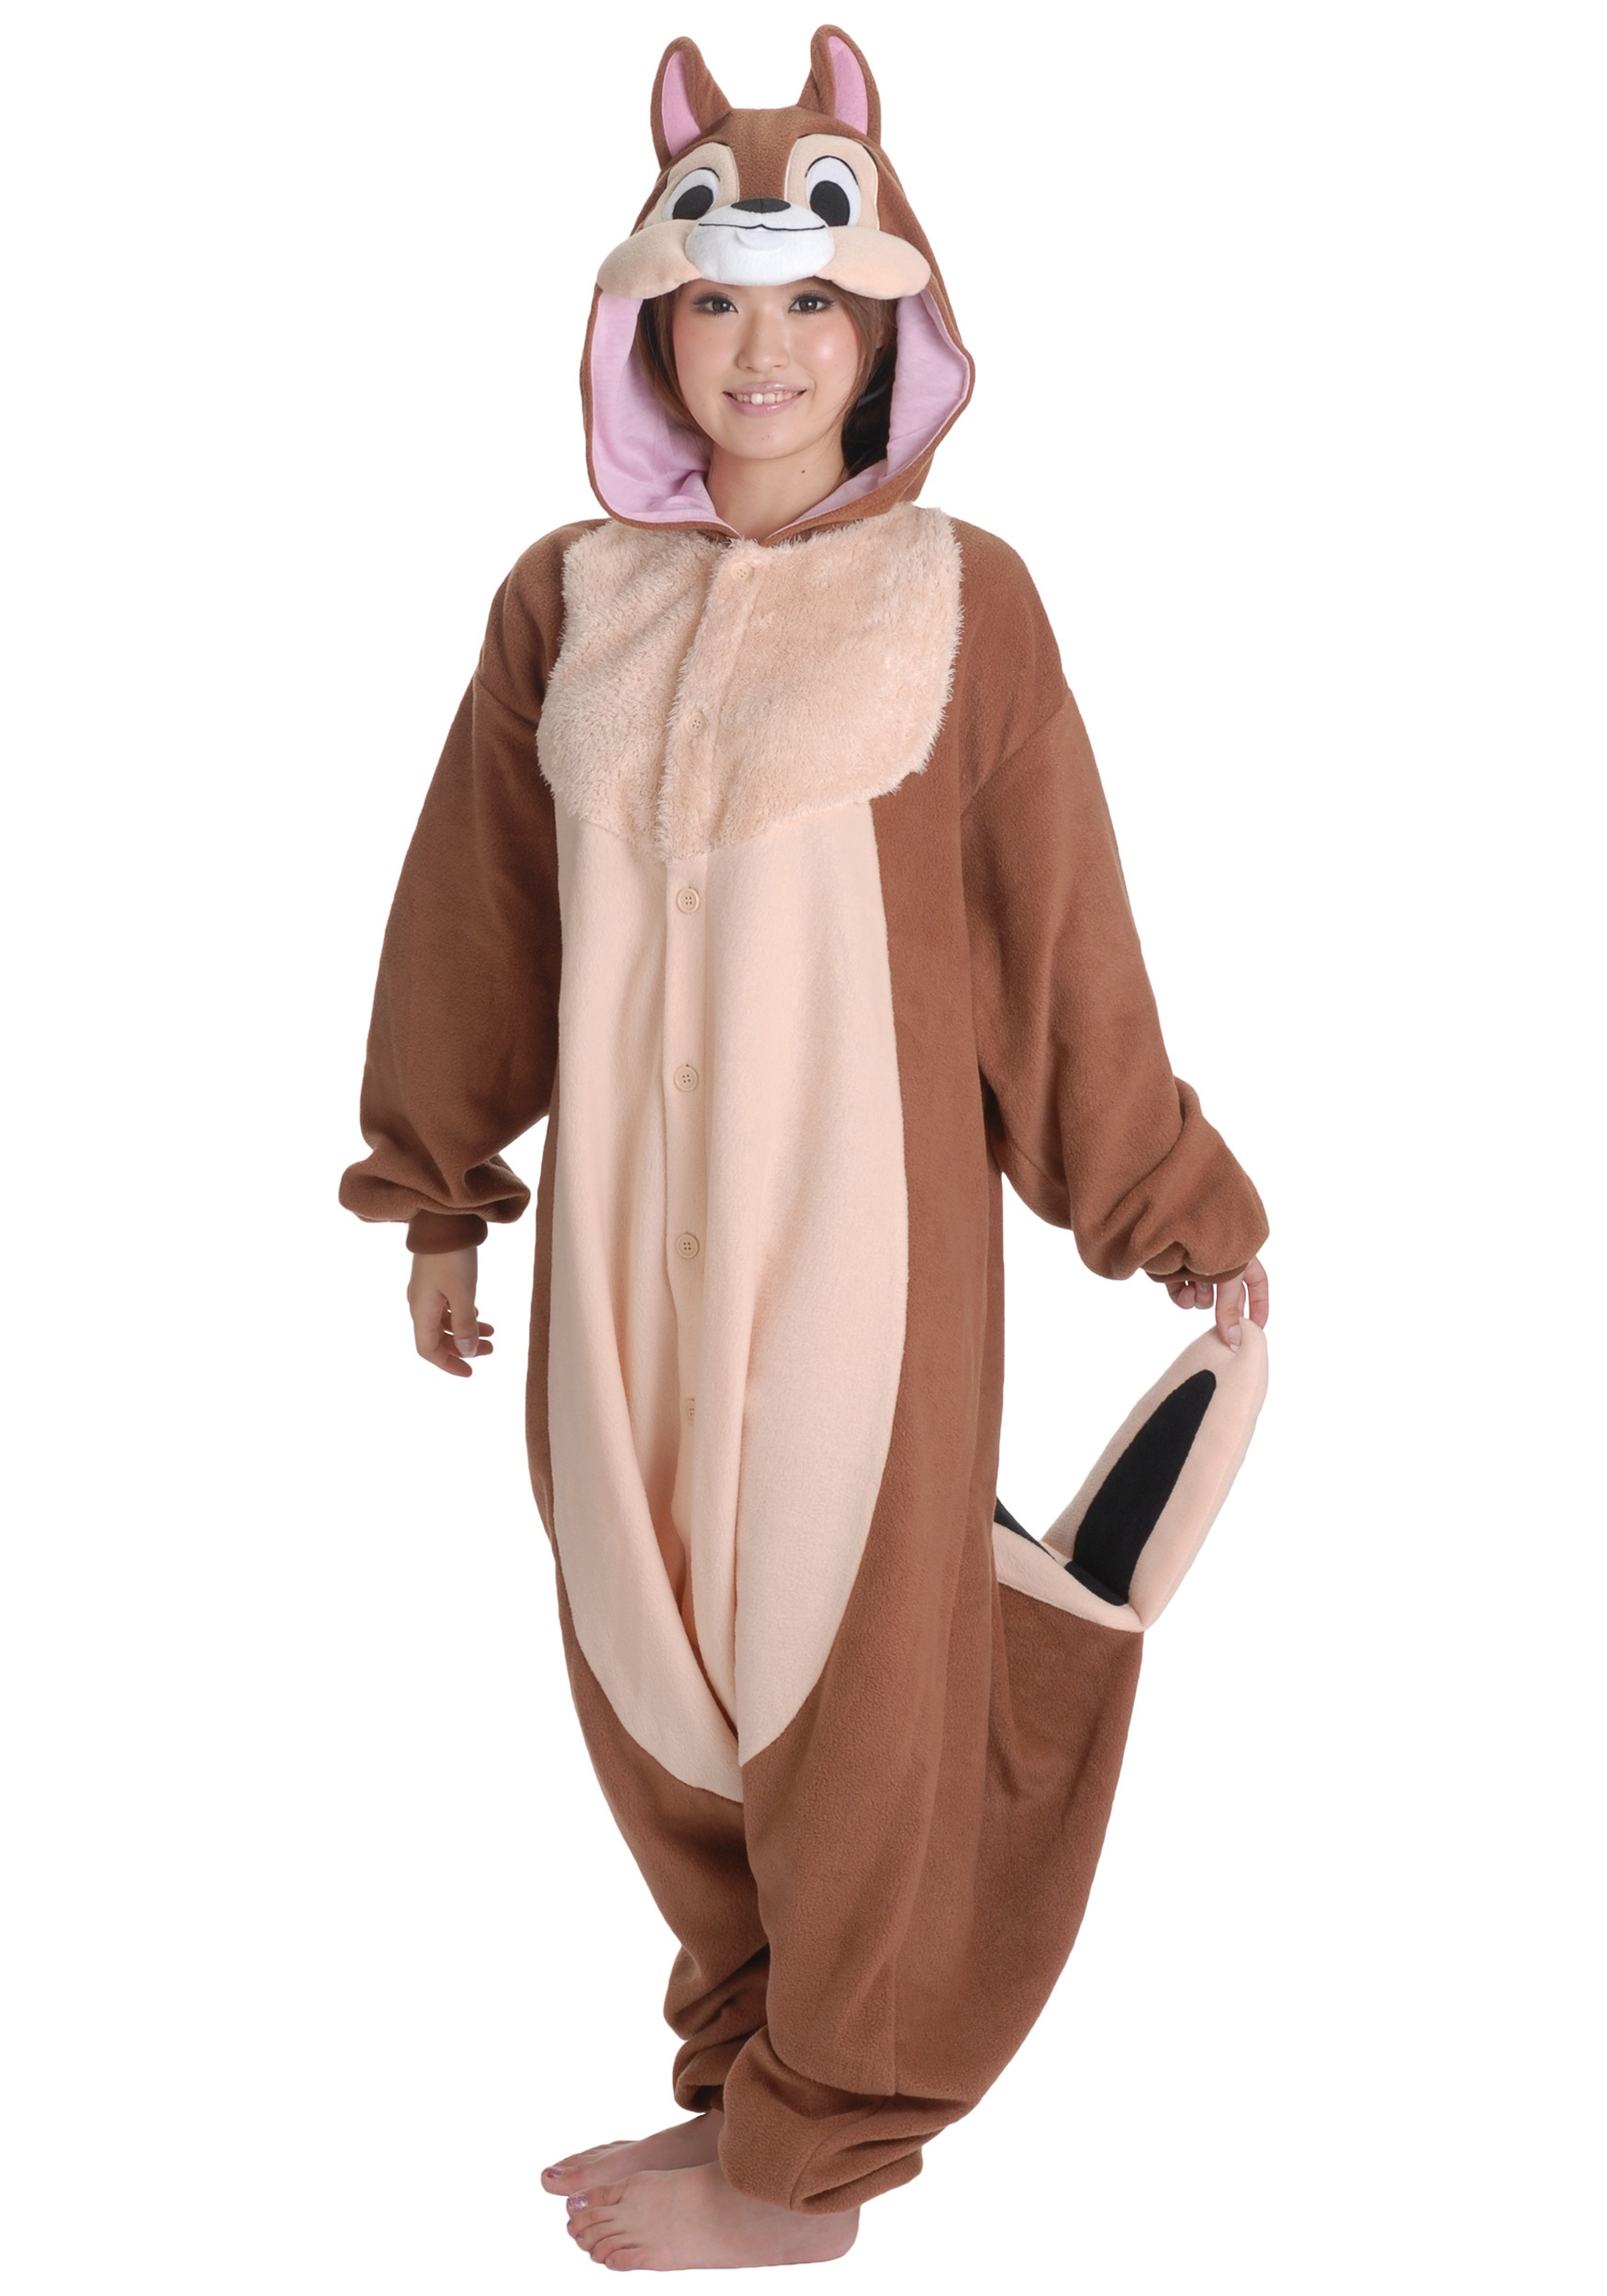 Chip Pajama Costume